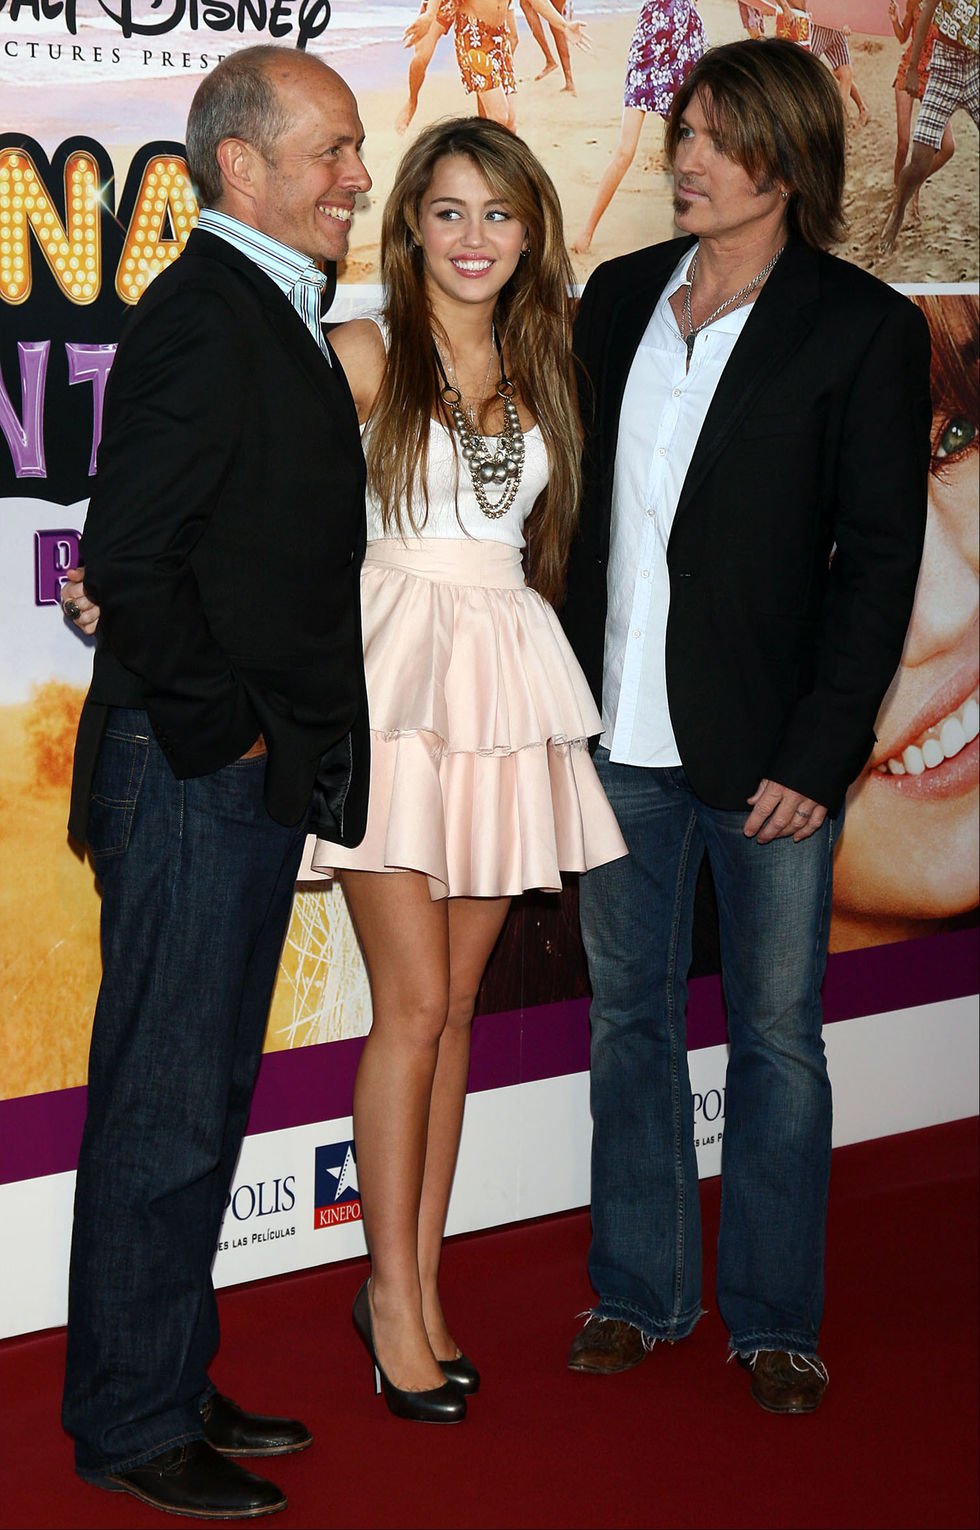 miley-cyrus-hannah-montana-the-movie-premiere-in-madrid-01